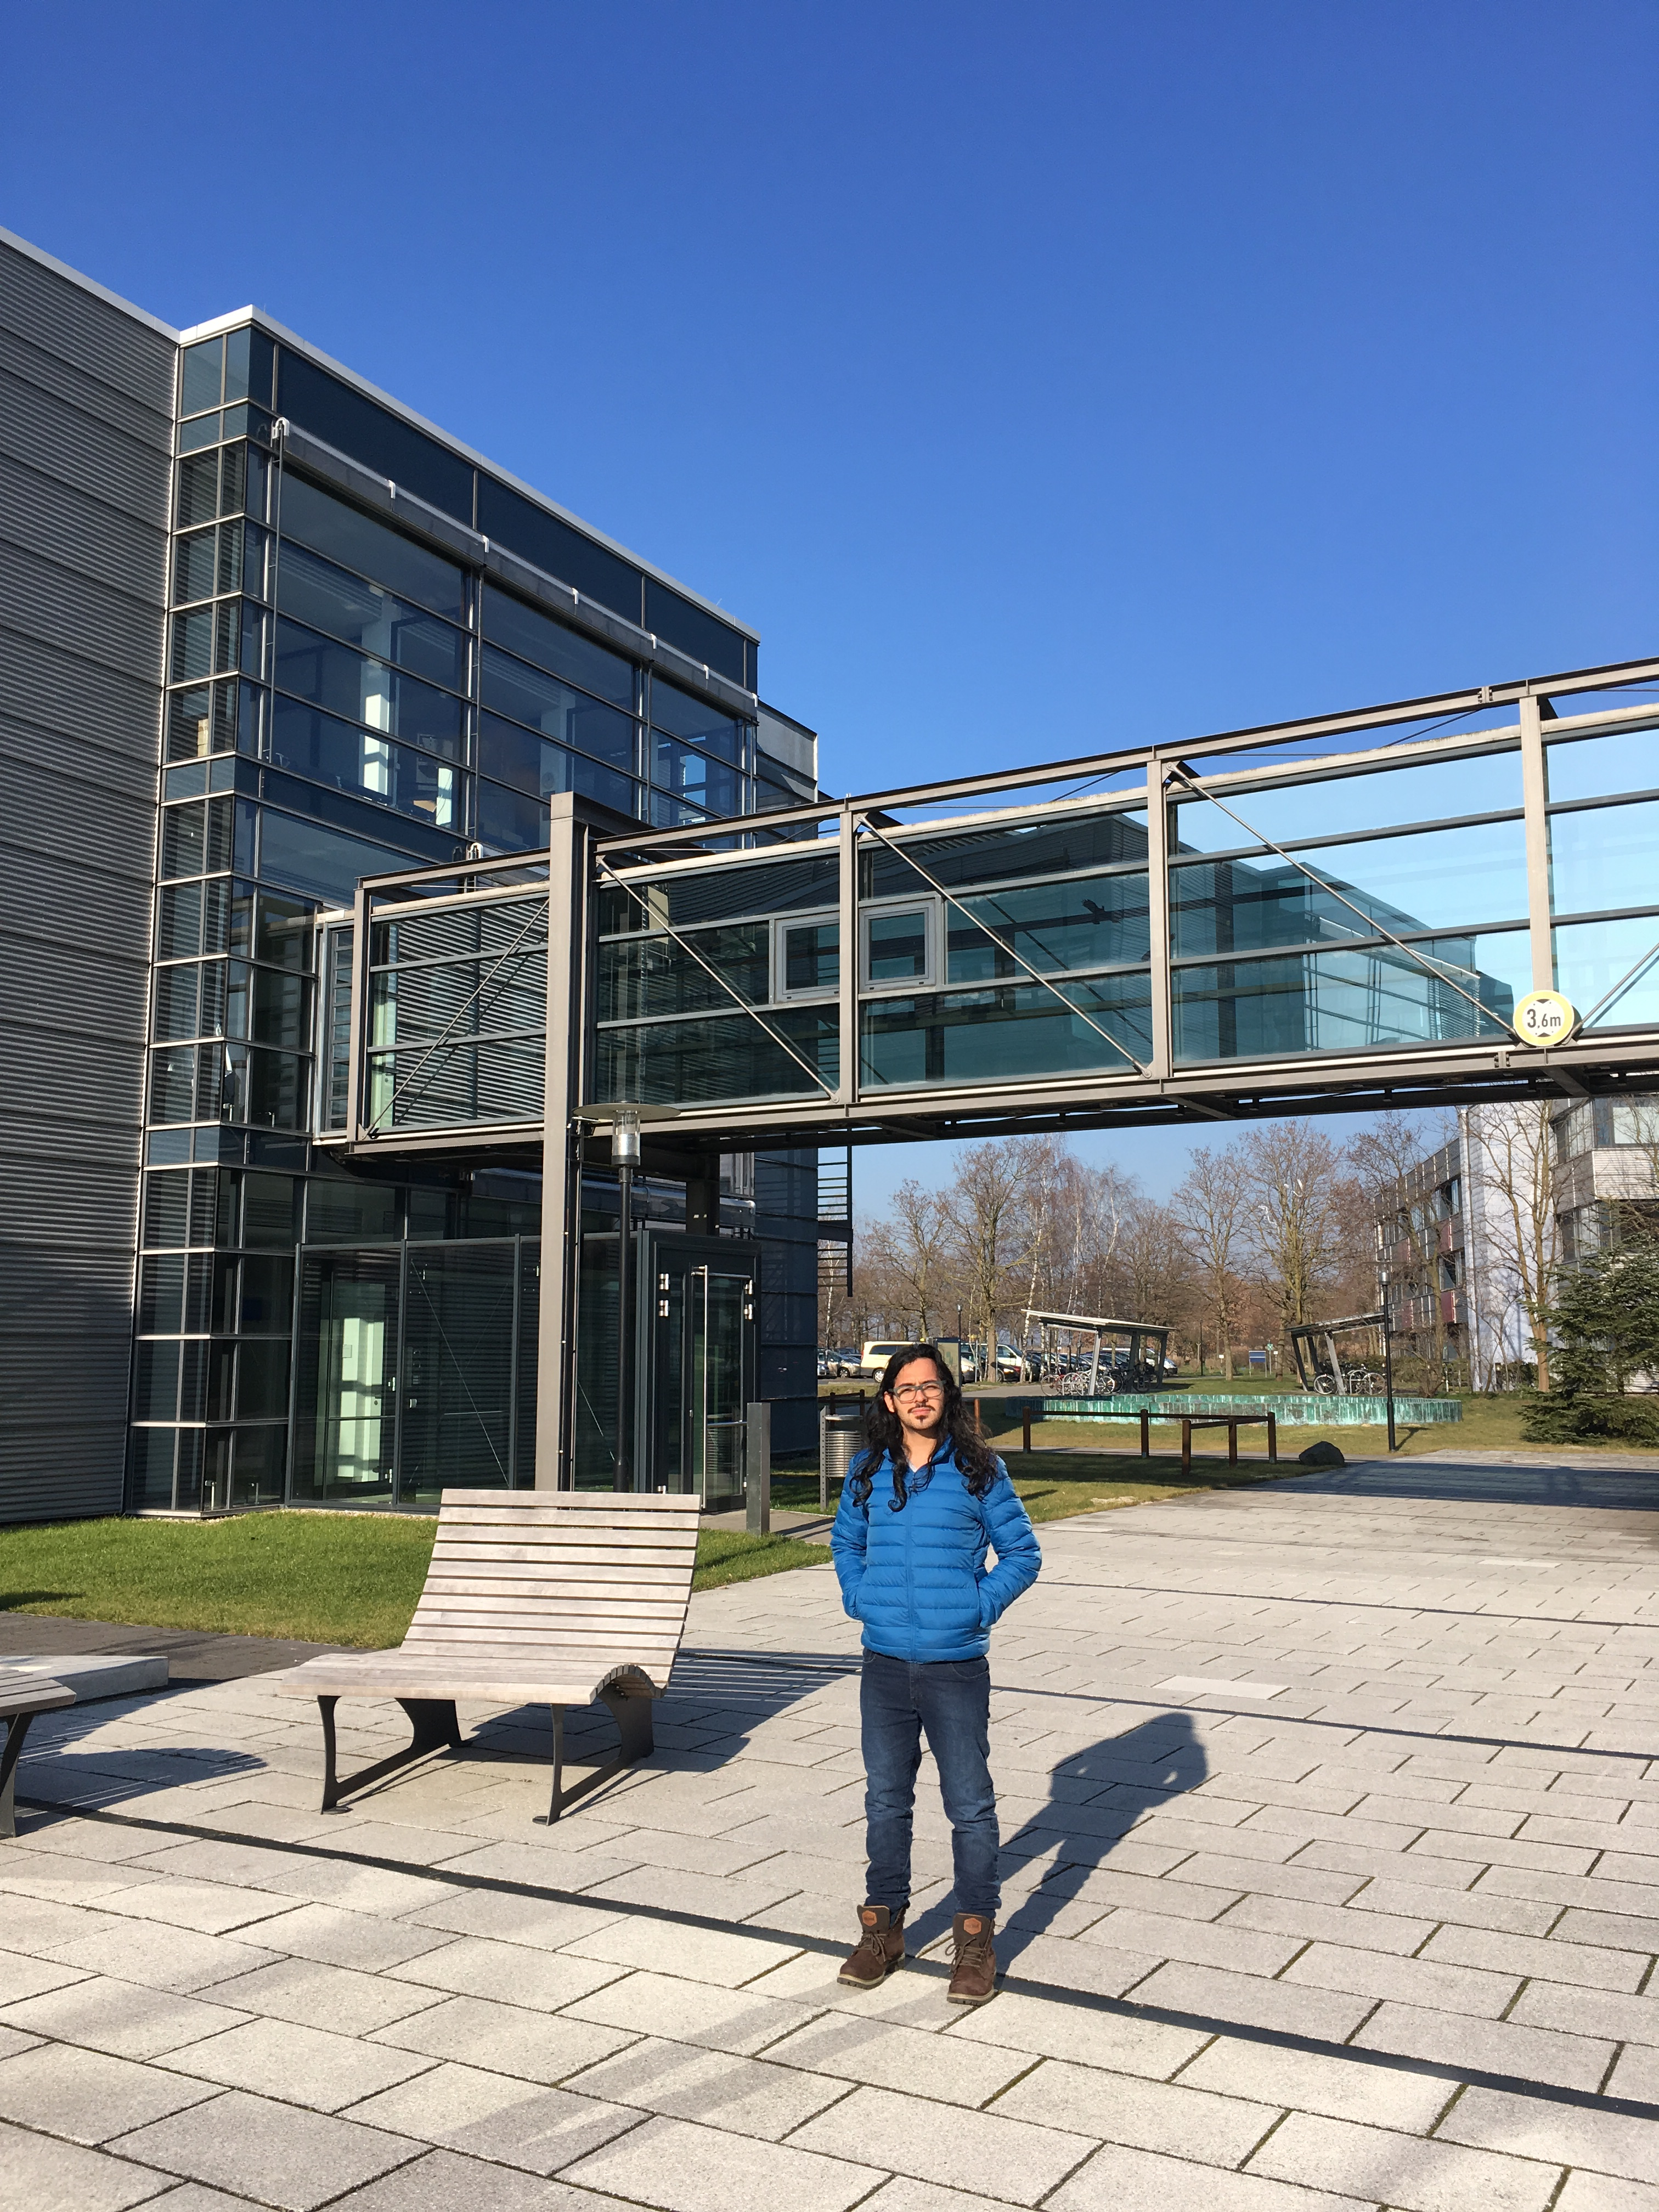 The Max Planck Institute of Molecular Plant Physiology (MPI-MP)